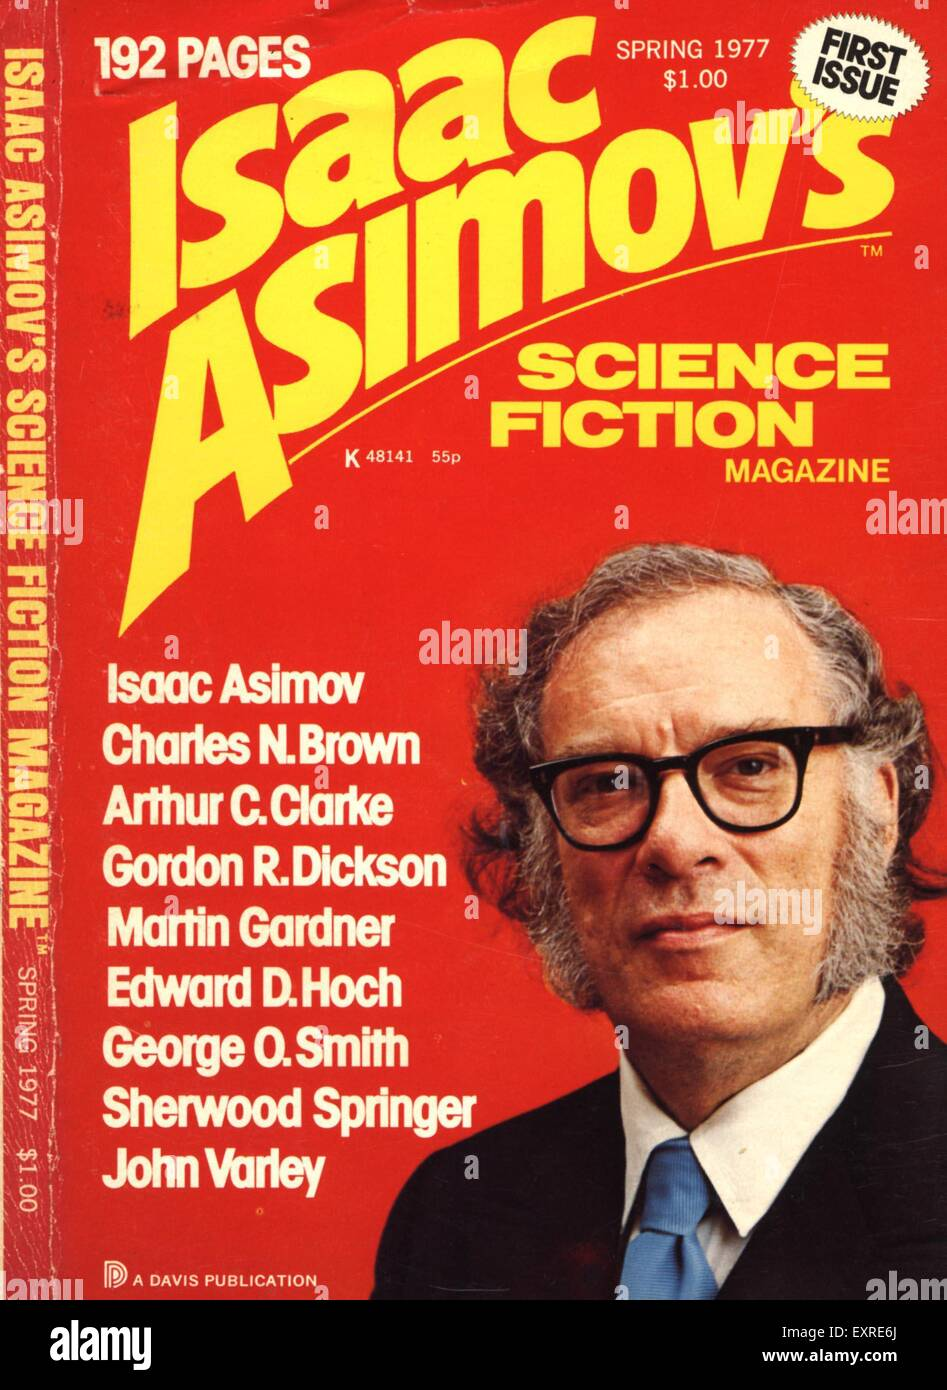 1970s UK Isaac Asimov's Science Fiction Magazine Cover - Stock Image